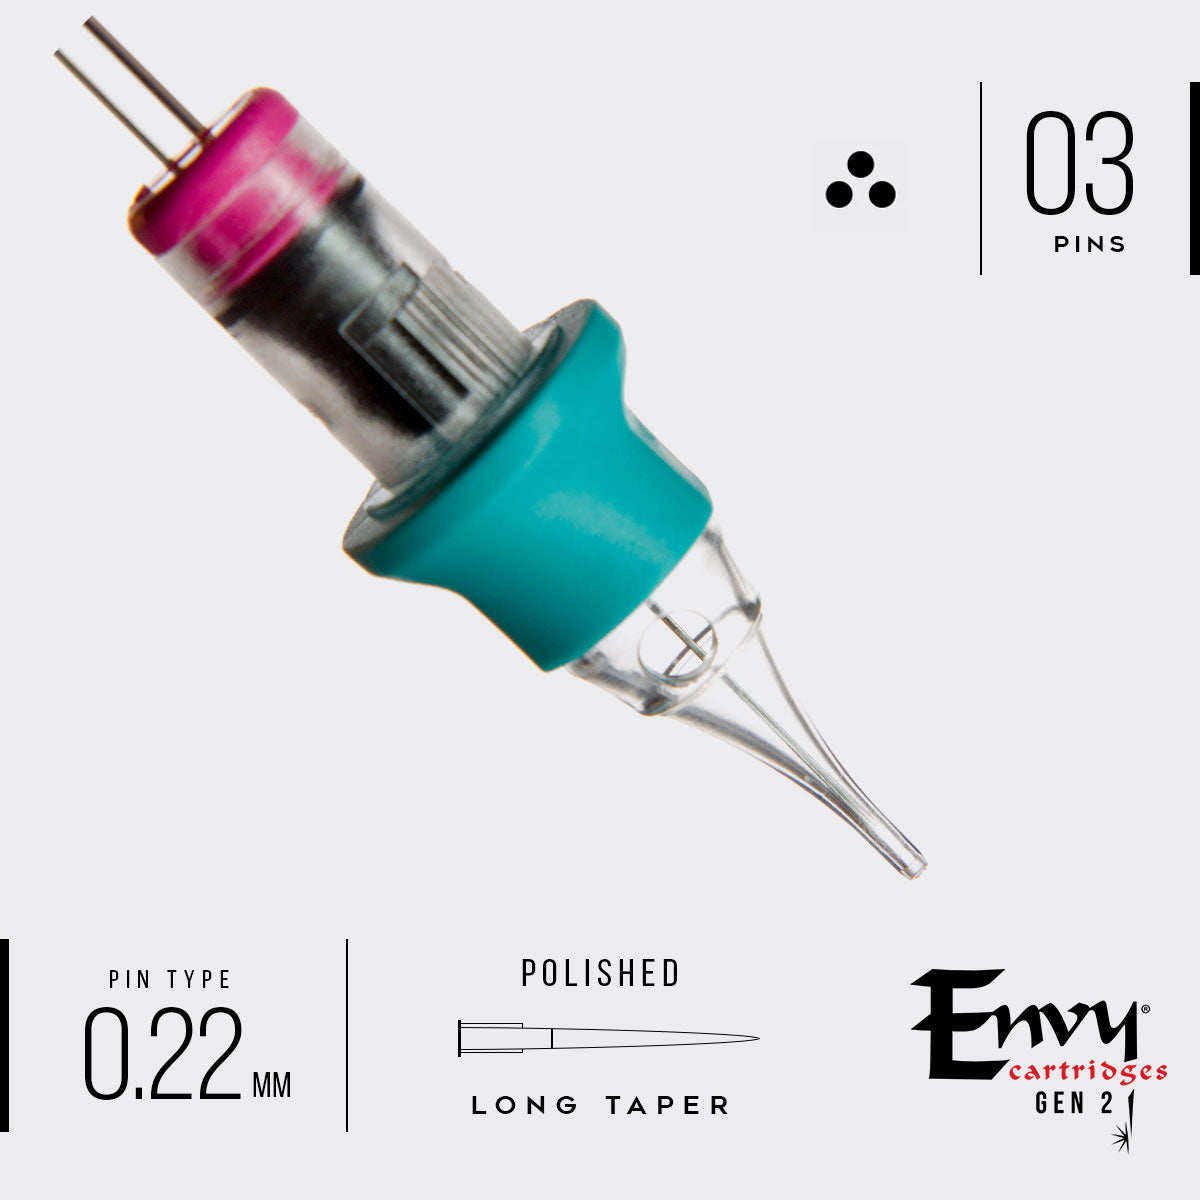 Envy Gen 2 Pico Flow Tip Round Shader Cartridges